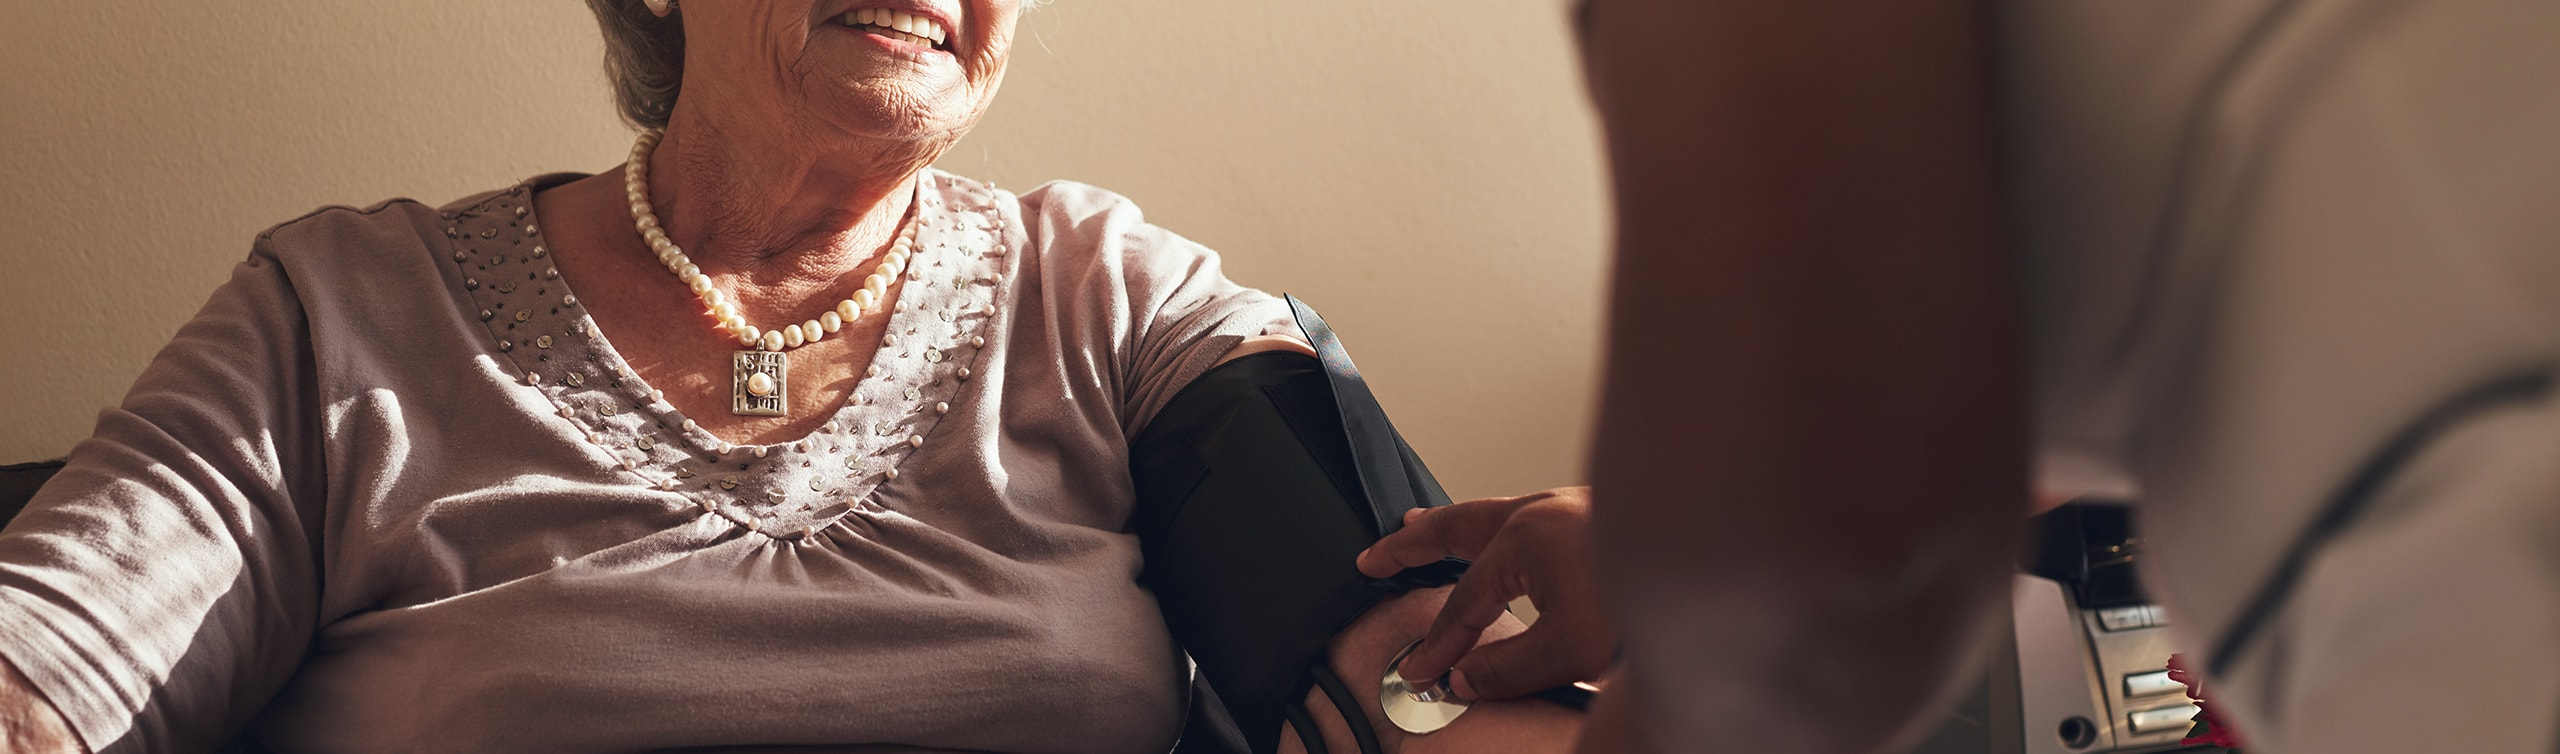 close-up of woman getting her blood pressure taken